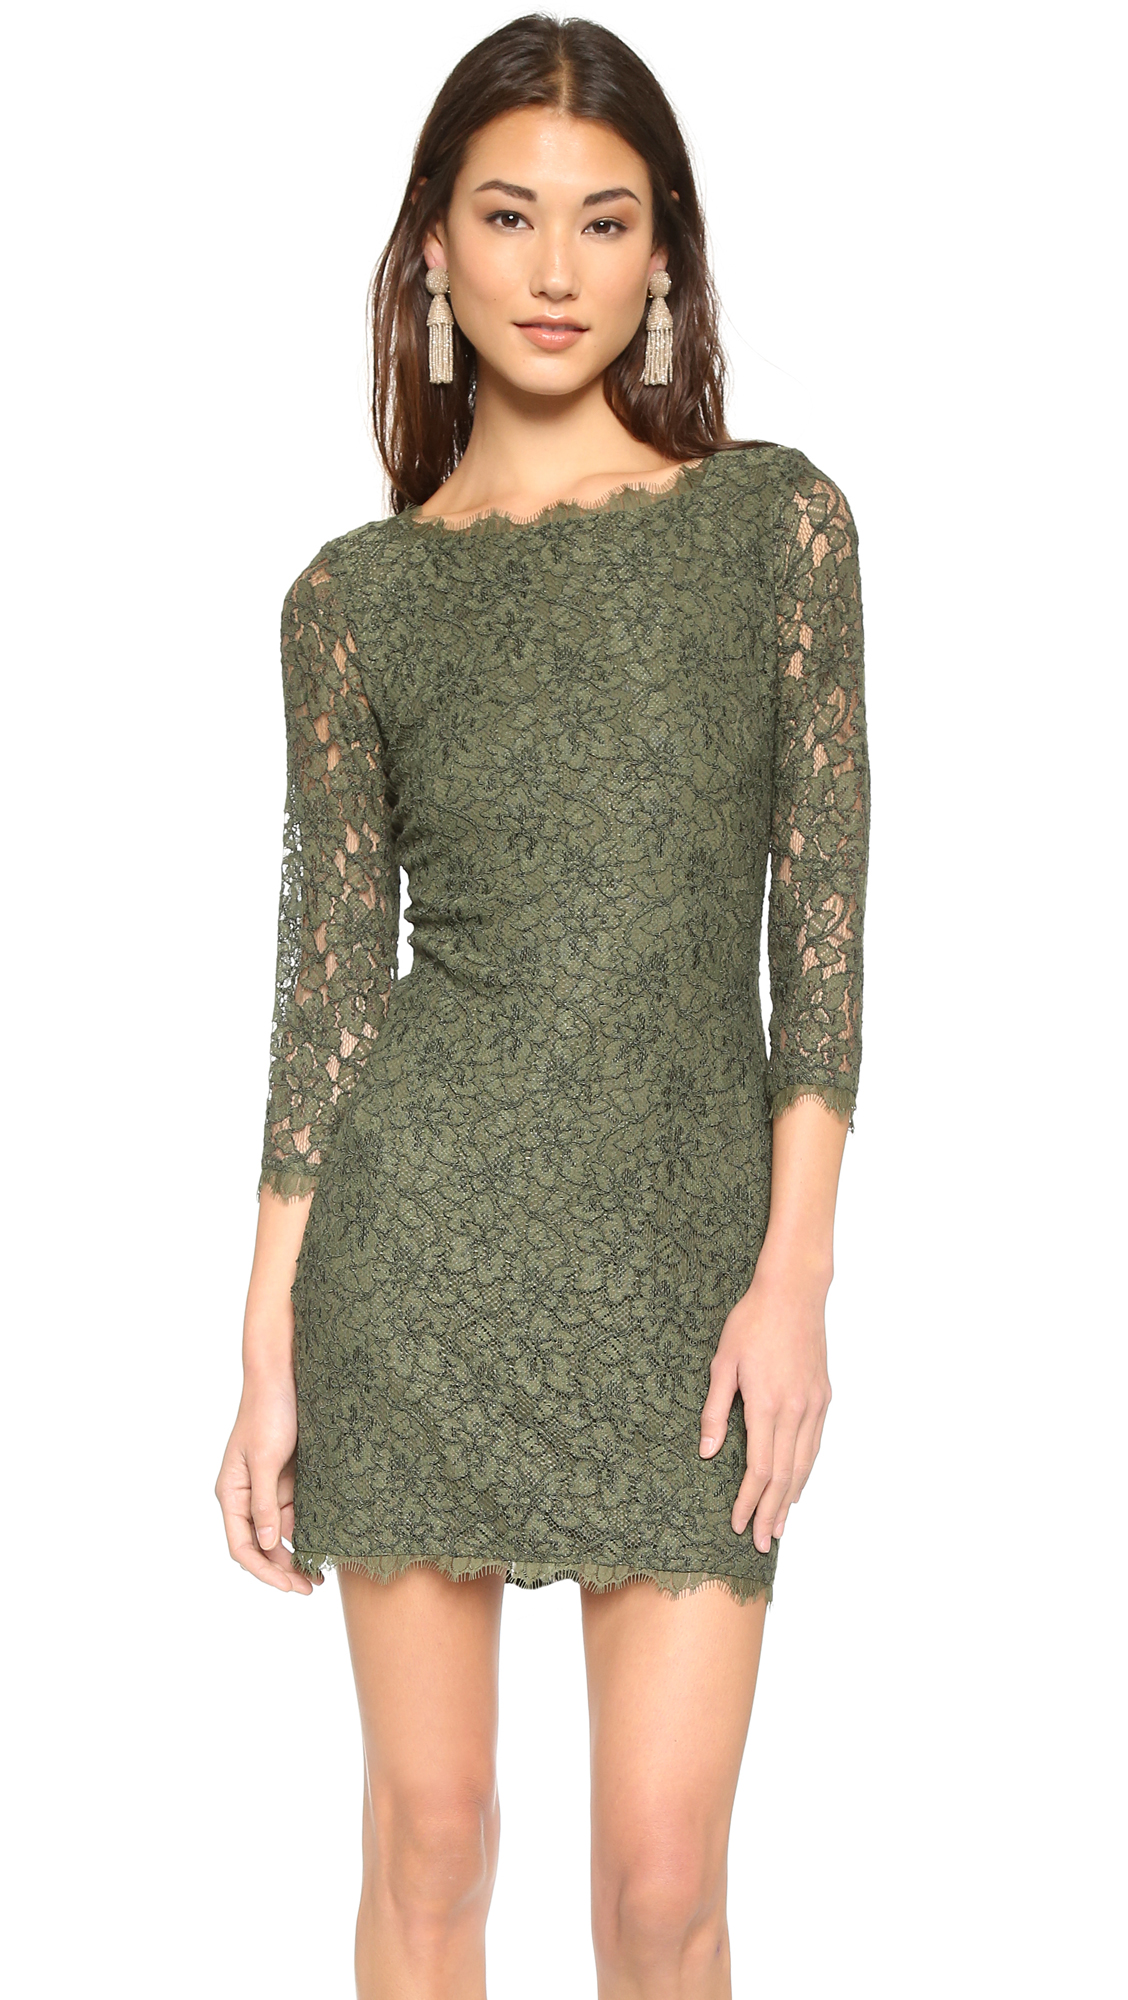 Diane von furstenberg zarita lace dress olive nite for Diane von furstenberg clothes